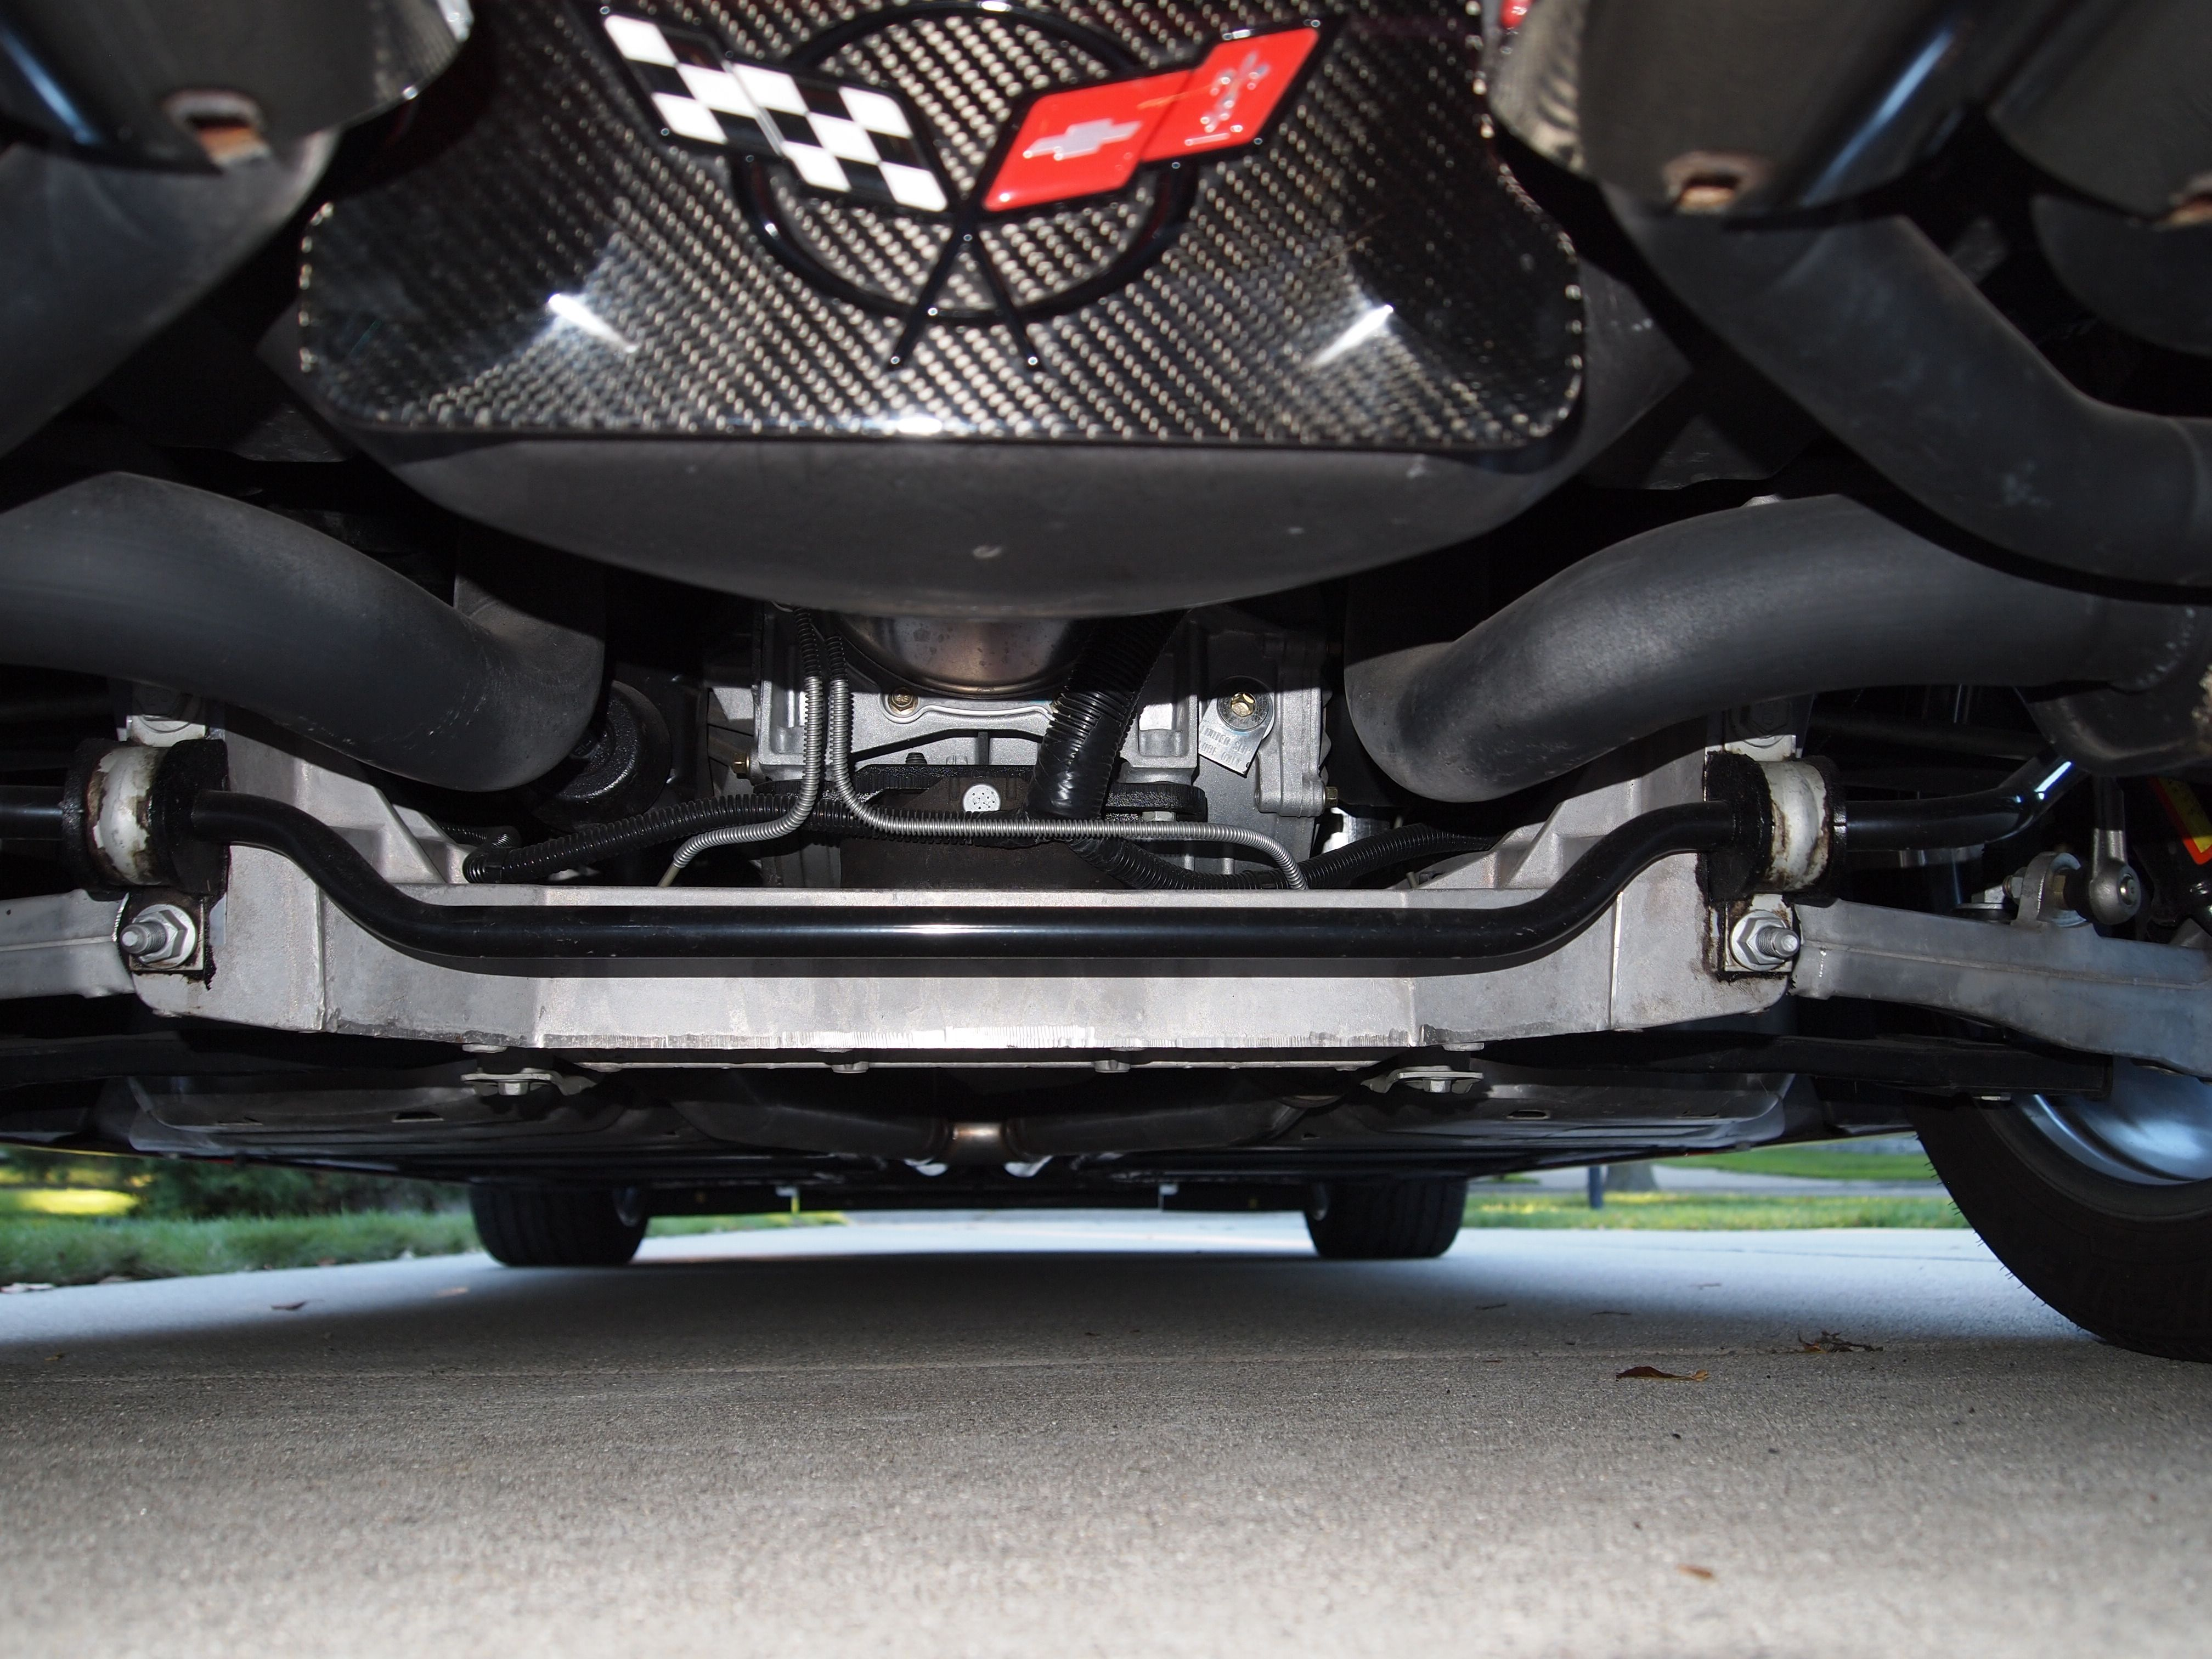 Amazing Condition Of The Undercarriage For A Car That Is 12 Years